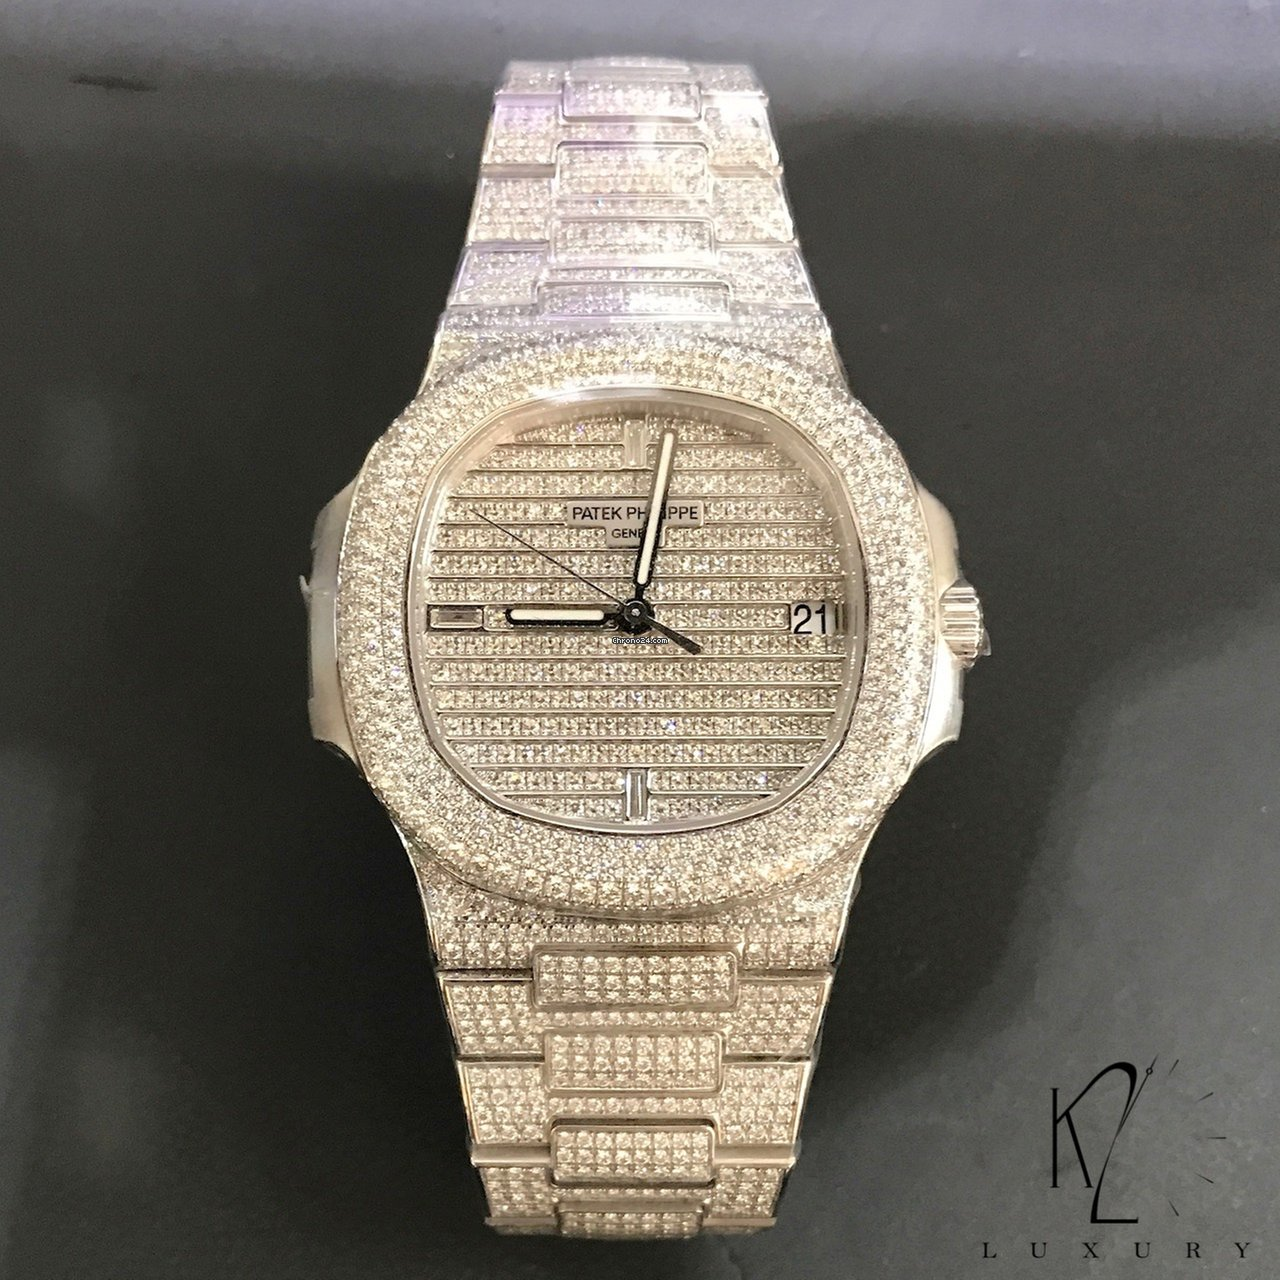 4321fb1f79d Patek Philippe 5719/1G Nautilus white gold diamond paved for $250,000 for  sale from a Trusted Seller on Chrono24